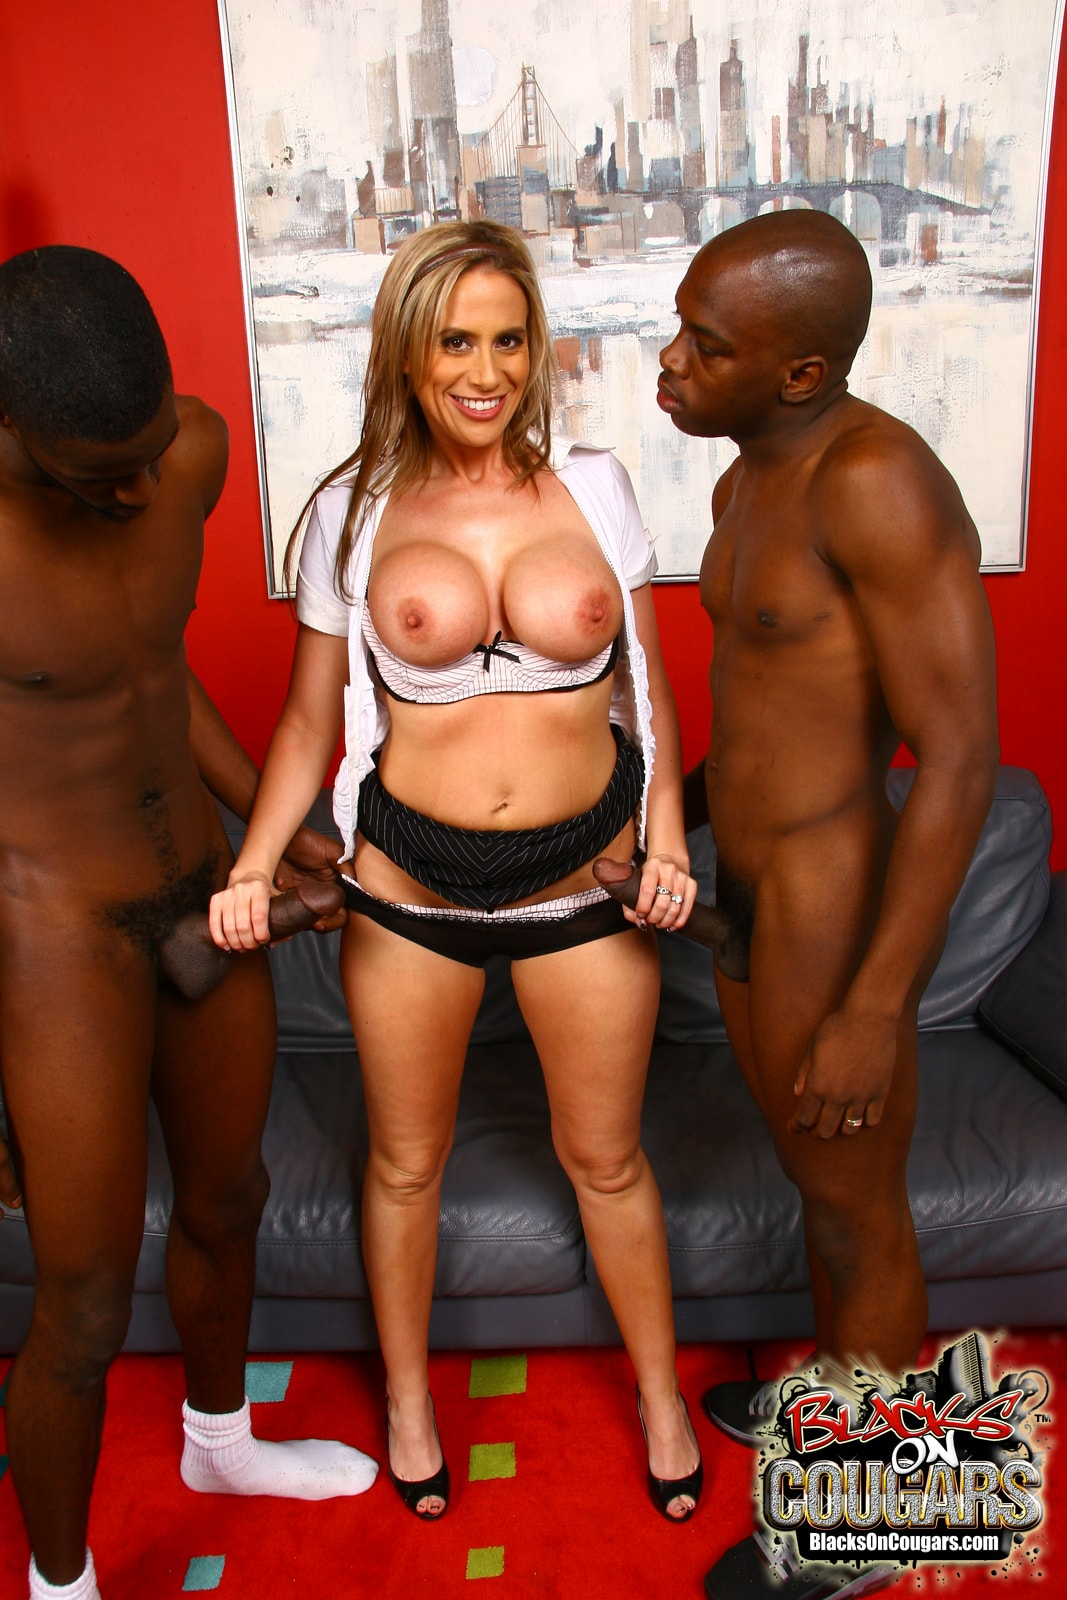 Dogfart '- Blacks On Cougars' starring Kylie Worthy (Photo 14)